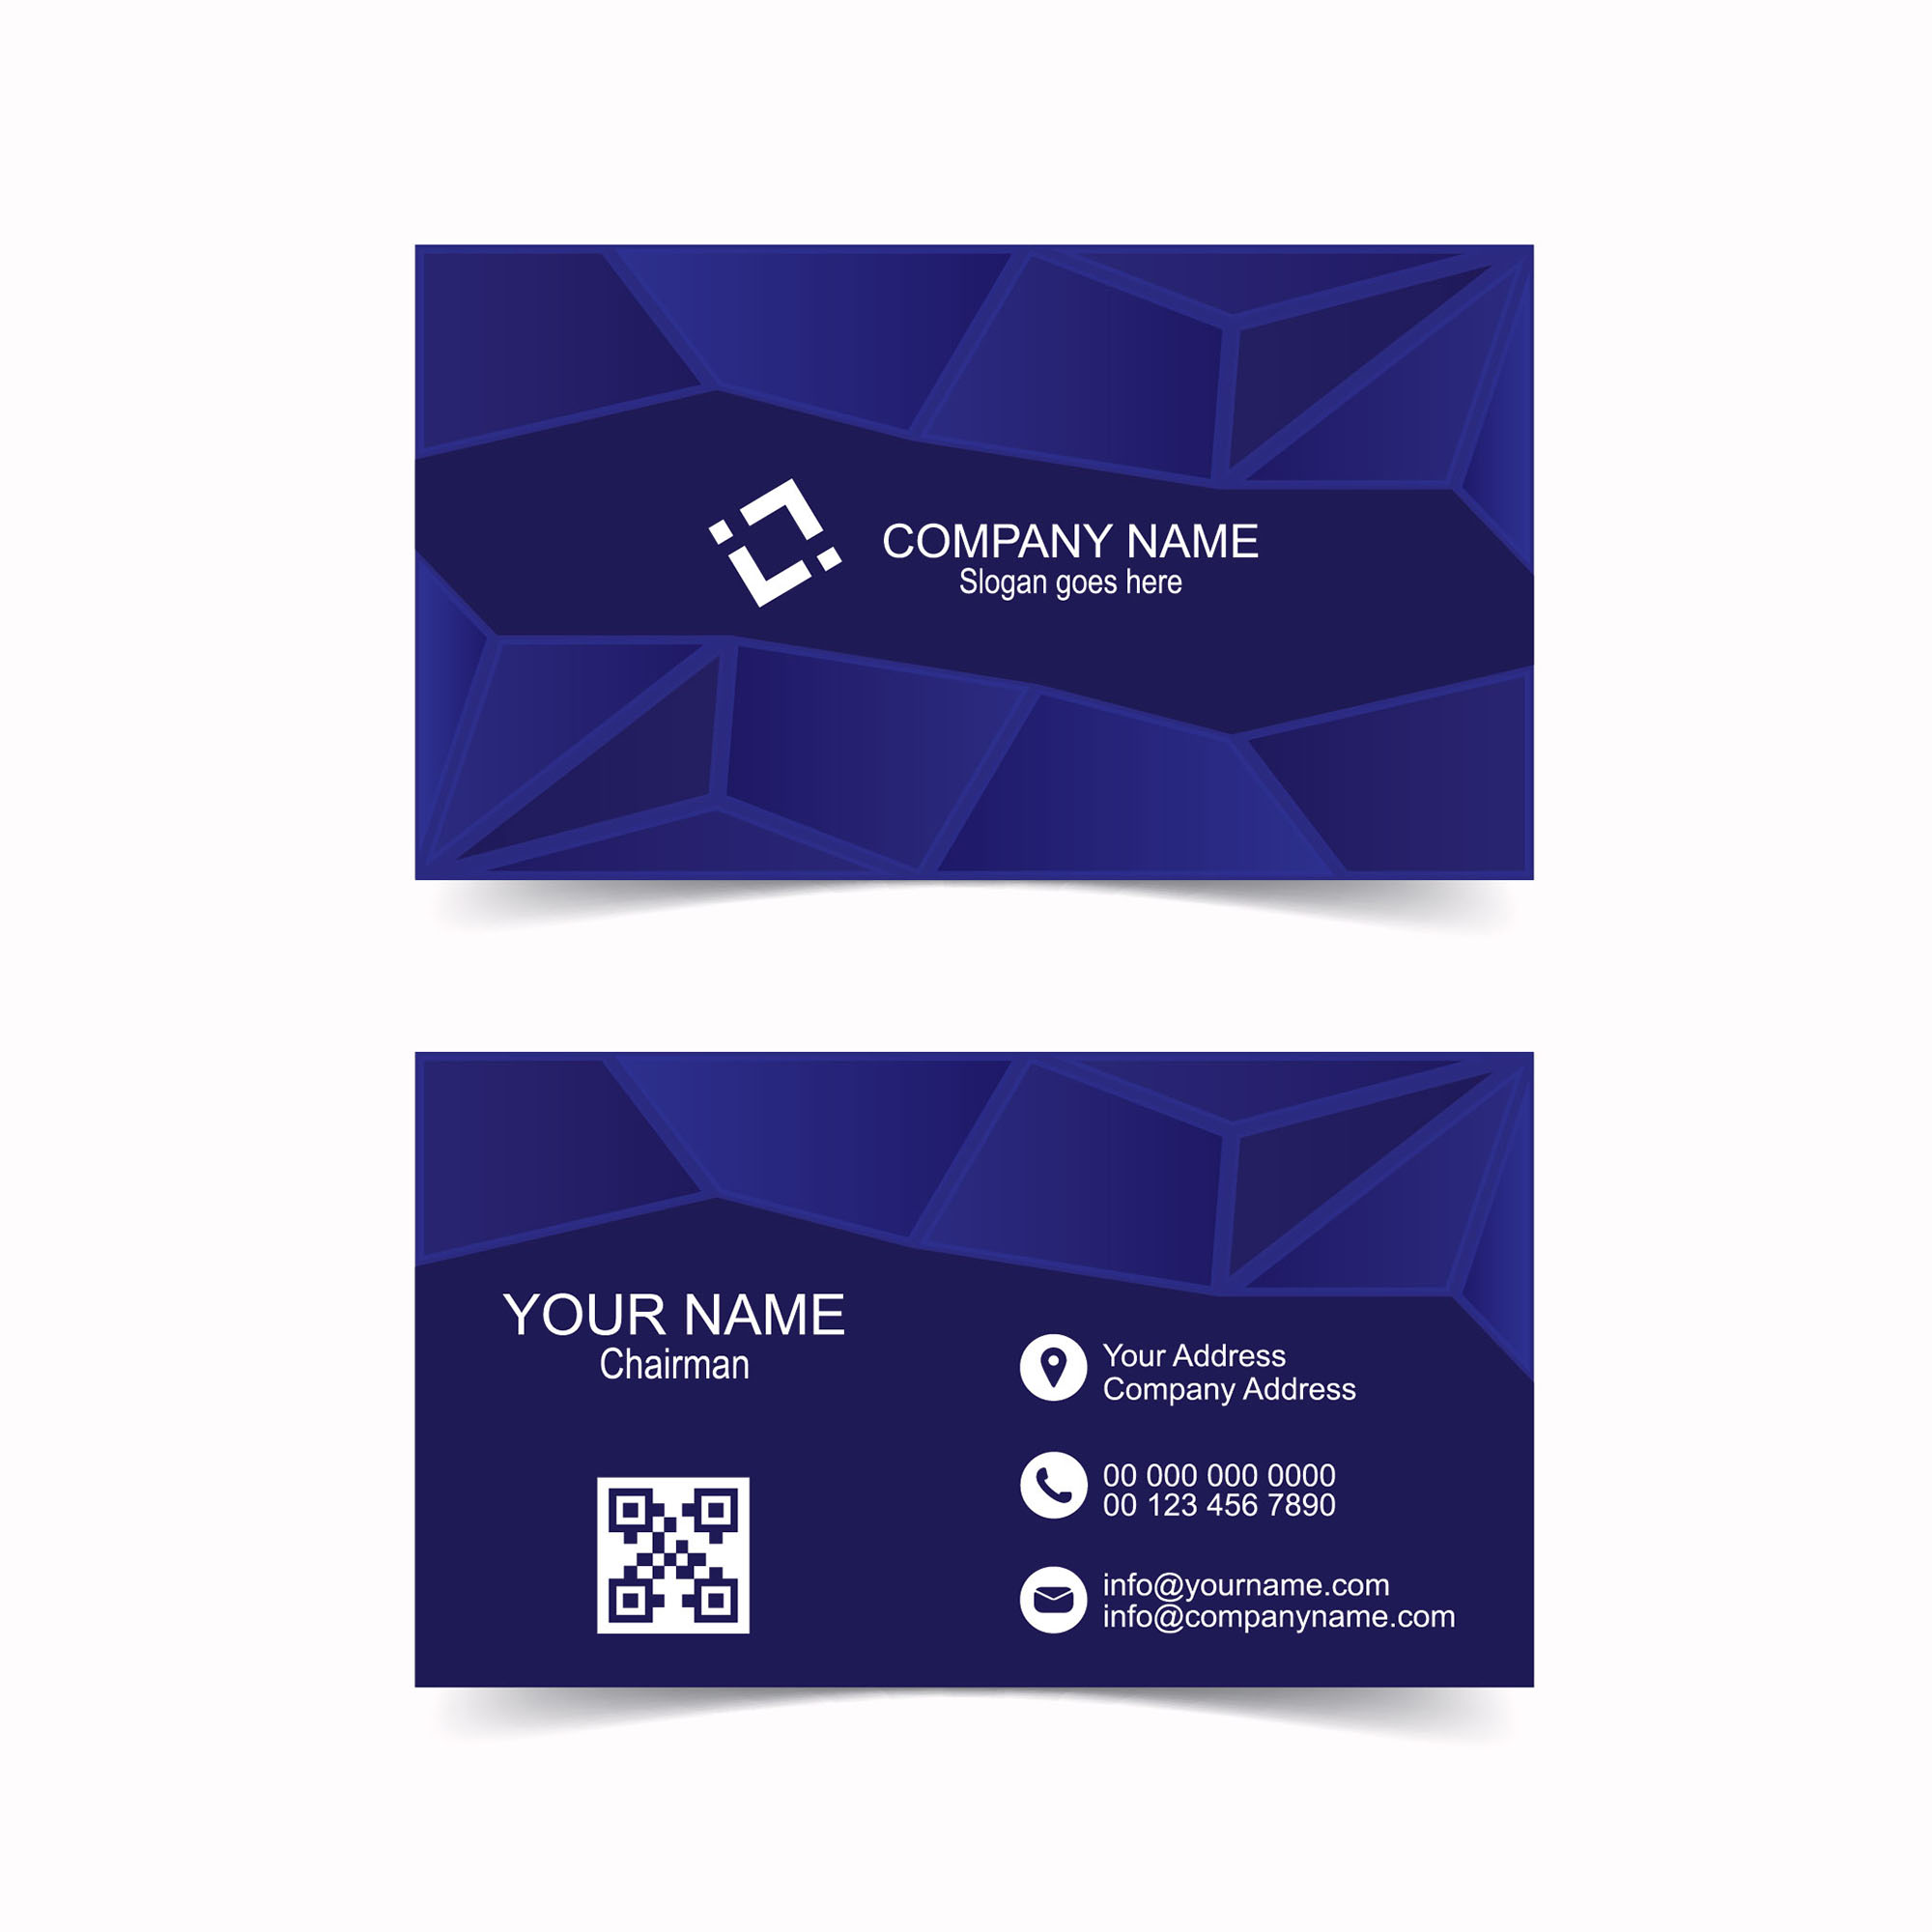 Abstract blue business card template free download wisxi business card business cards business card design business card template design templates cheaphphosting Gallery